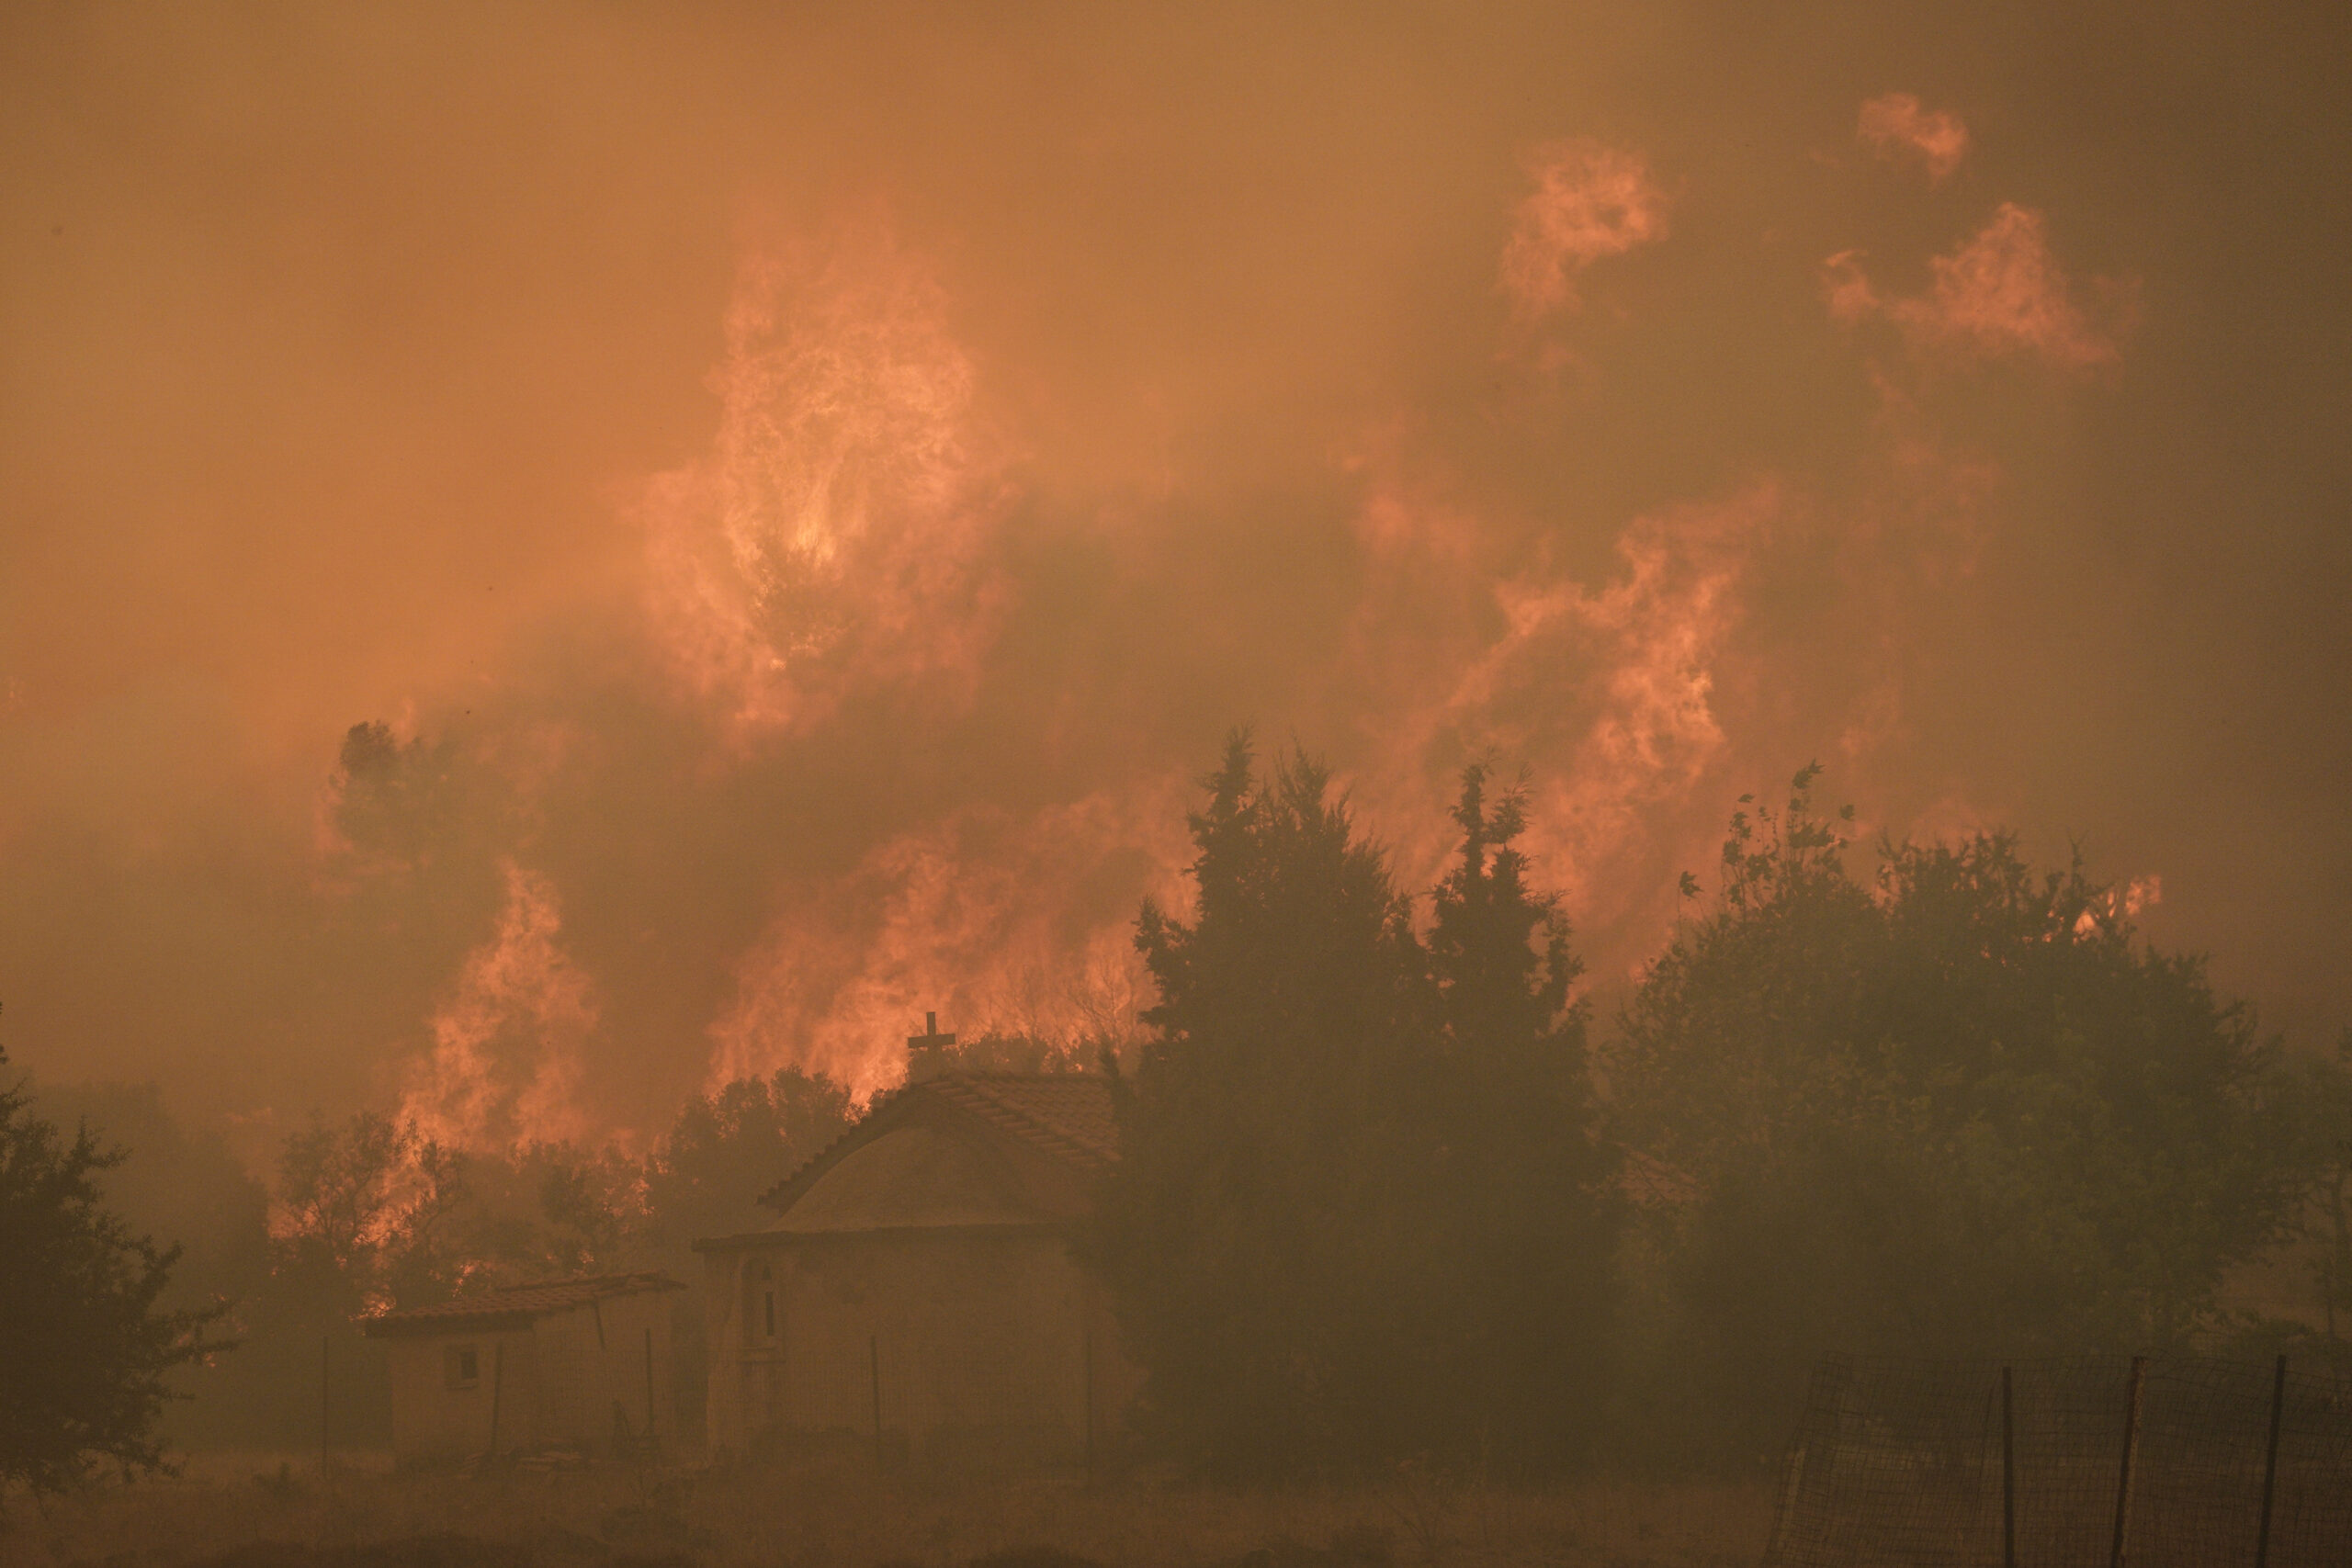 Smoke and flames rise as firefighters, locals and volunteers try extinguish a wildfire, near Vilia Village, Western Athens, Greece, on Aug. 18, 2021. Credit: Nick Paleologos/Anadolu Agency via Getty Images